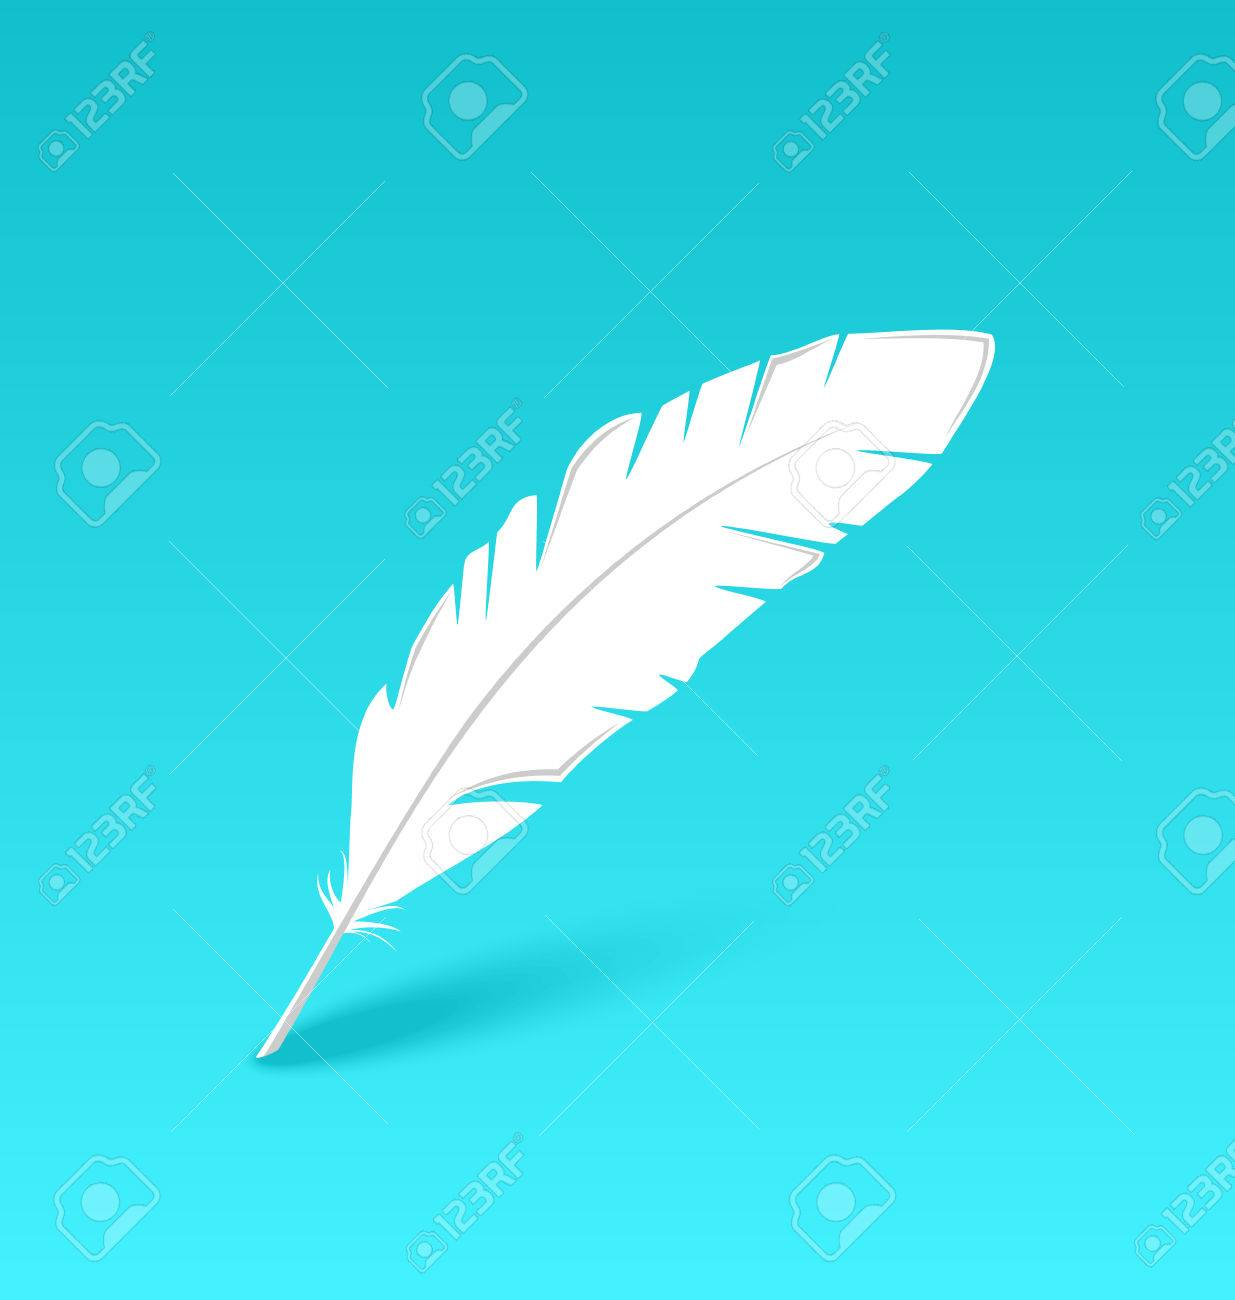 Illustration white feather isolated on blue background - vector Stock Vector - 24333539